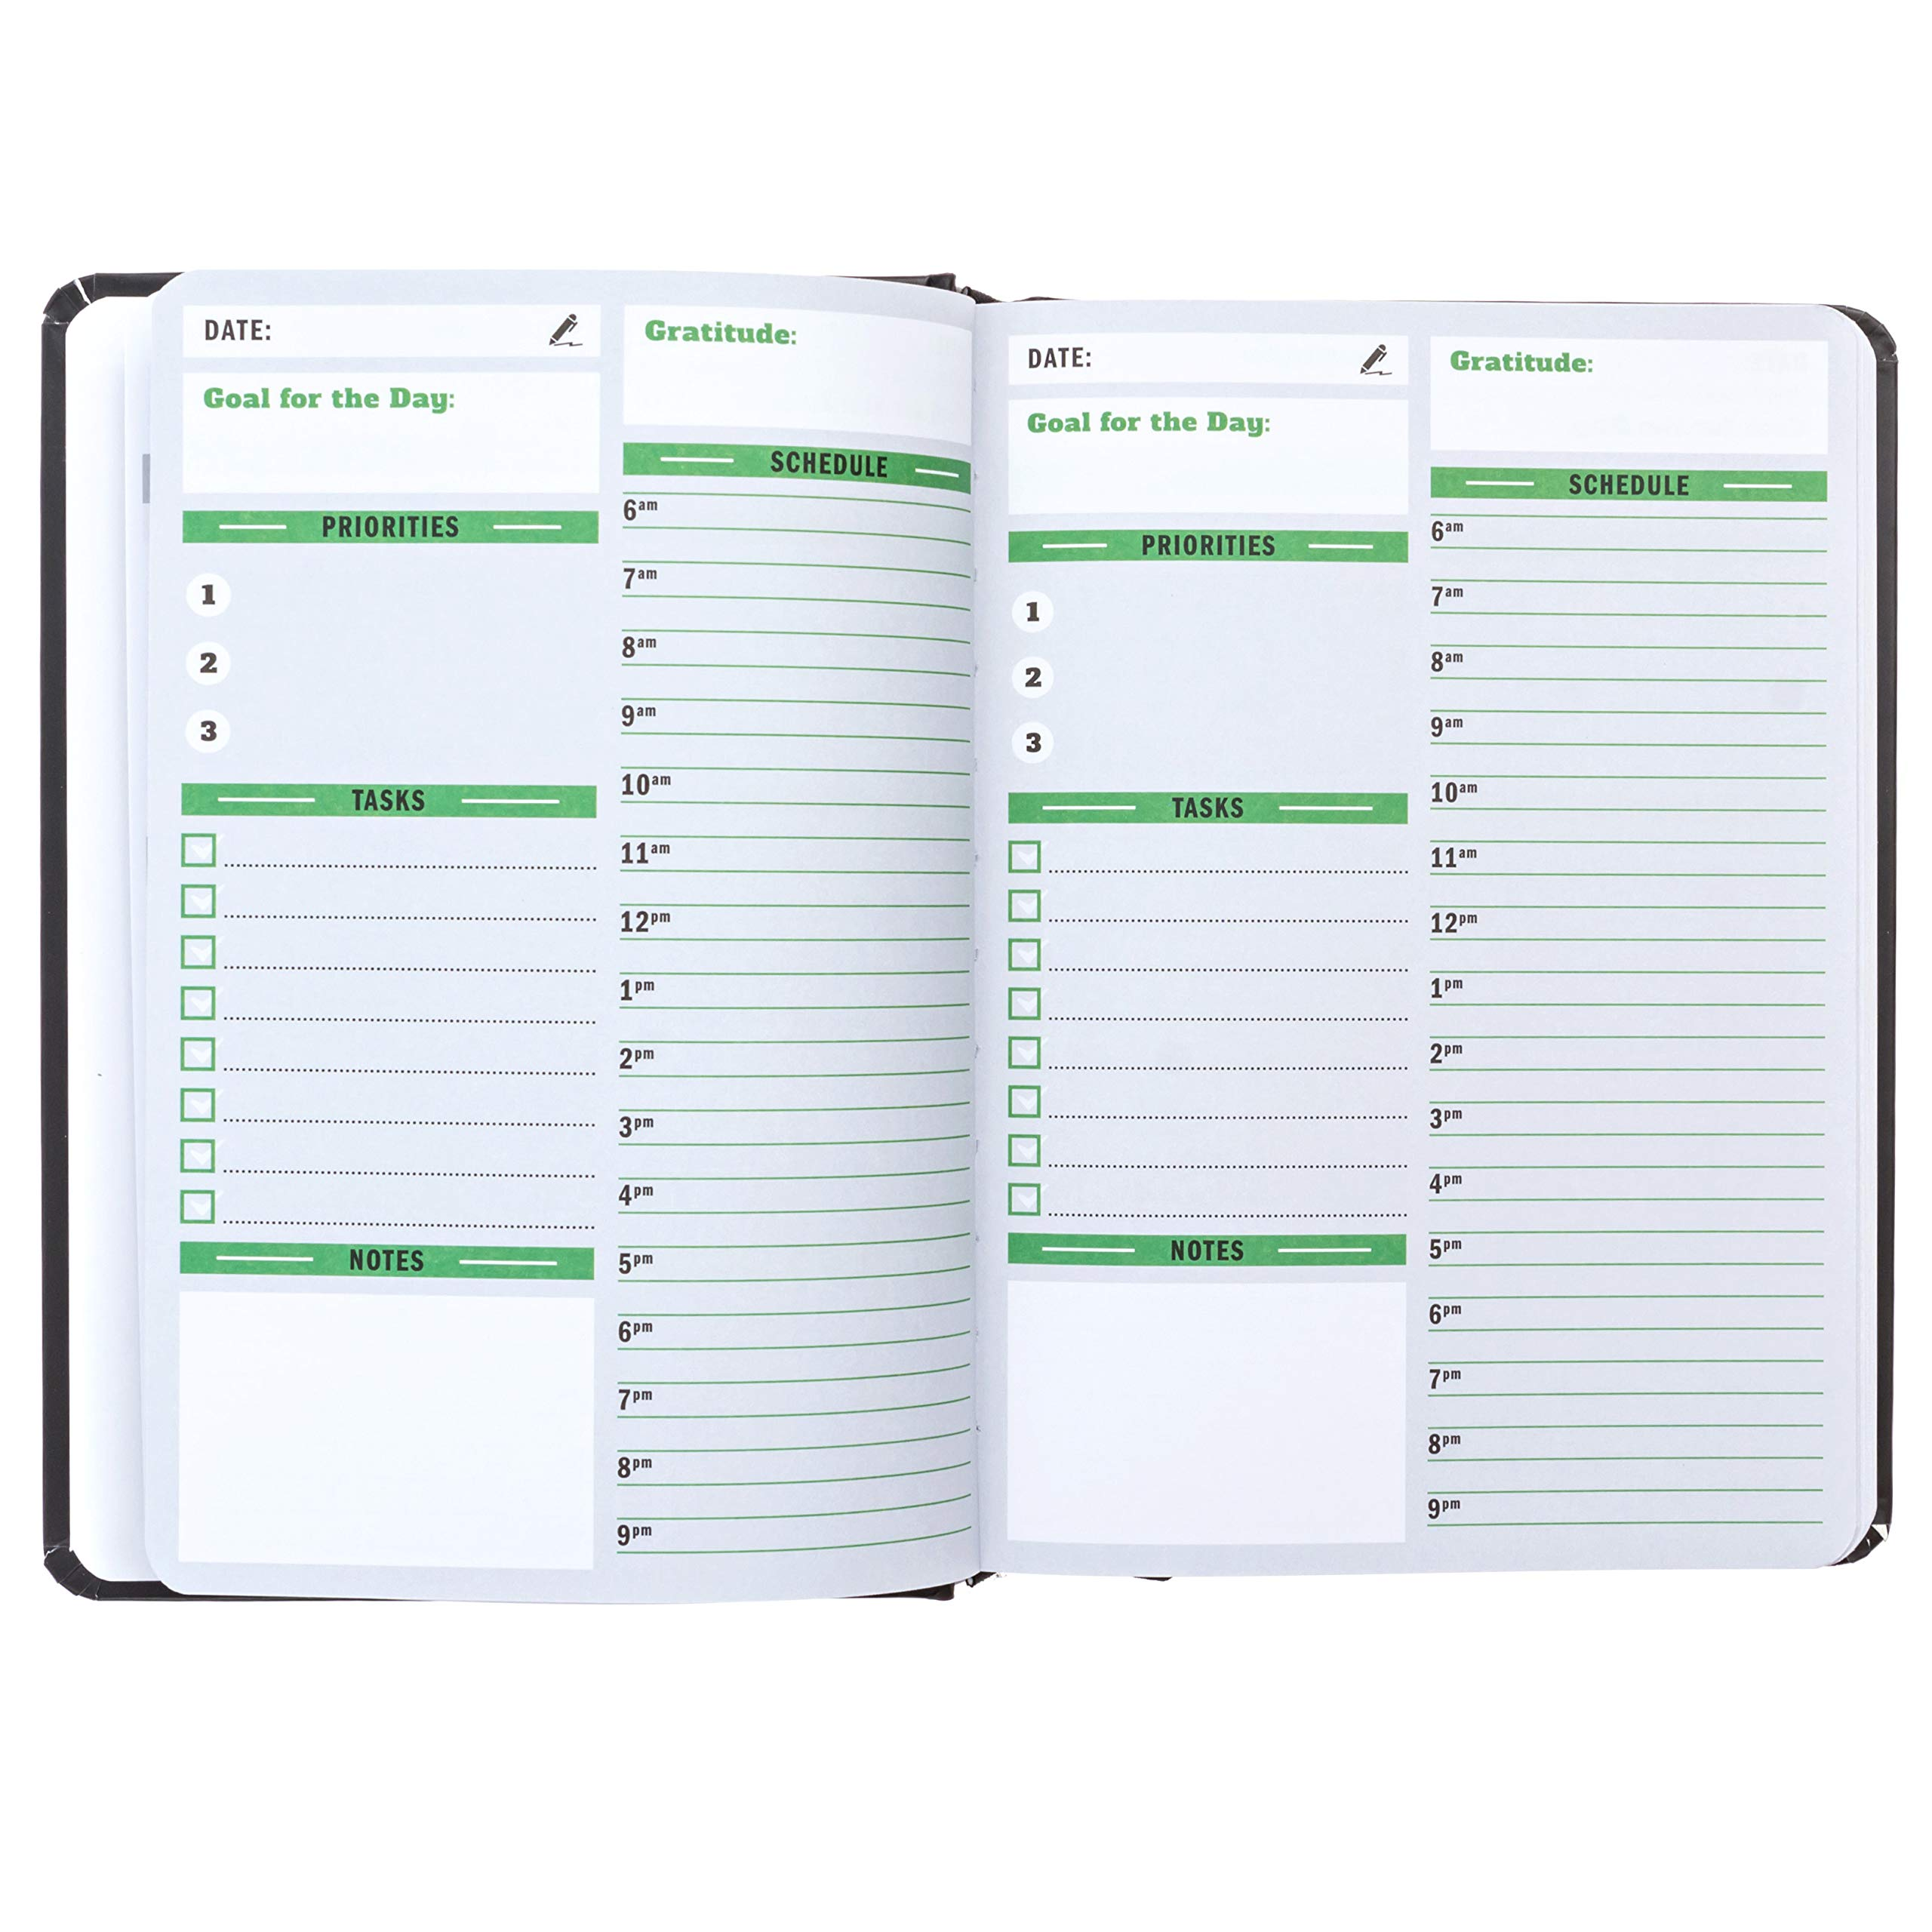 Sunnyside Undated Planner - Daily Organizer, Hourly, Day and Monthly Planner | Full Size Non-Dated Calendar Journal for Appointments, Tasks, Goal Setting, Tracking Priorities and Gratitude Notes